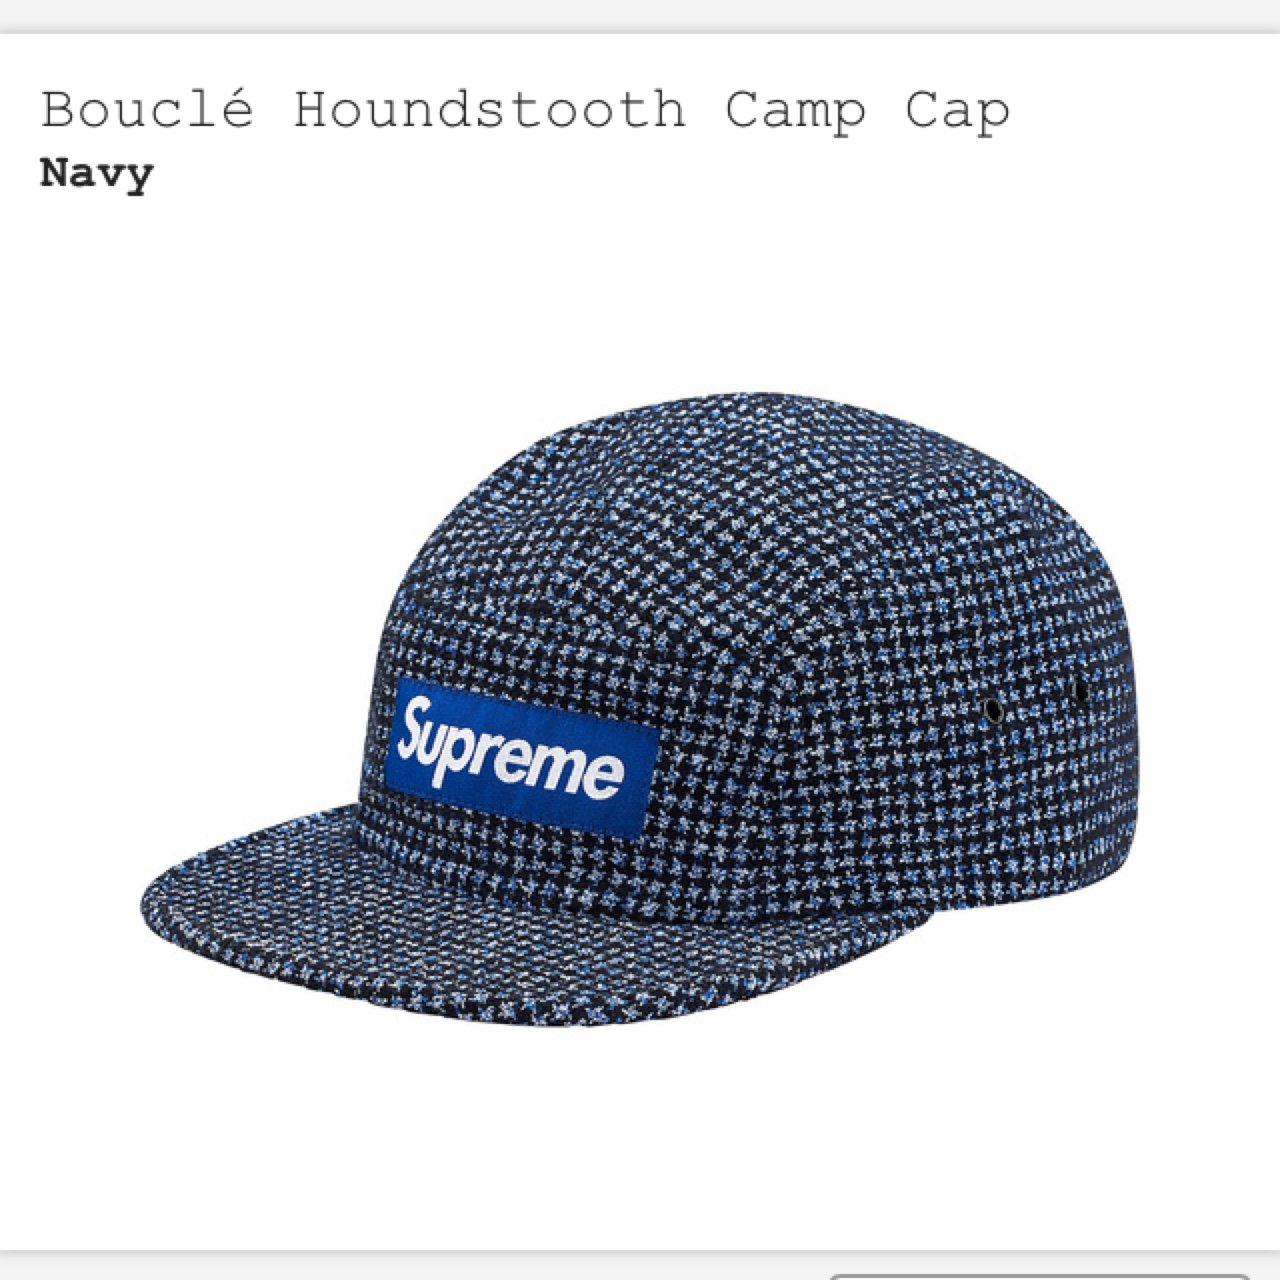 232344ea7b3 Supreme Boucle Houndstooth Camp Cap. Sold